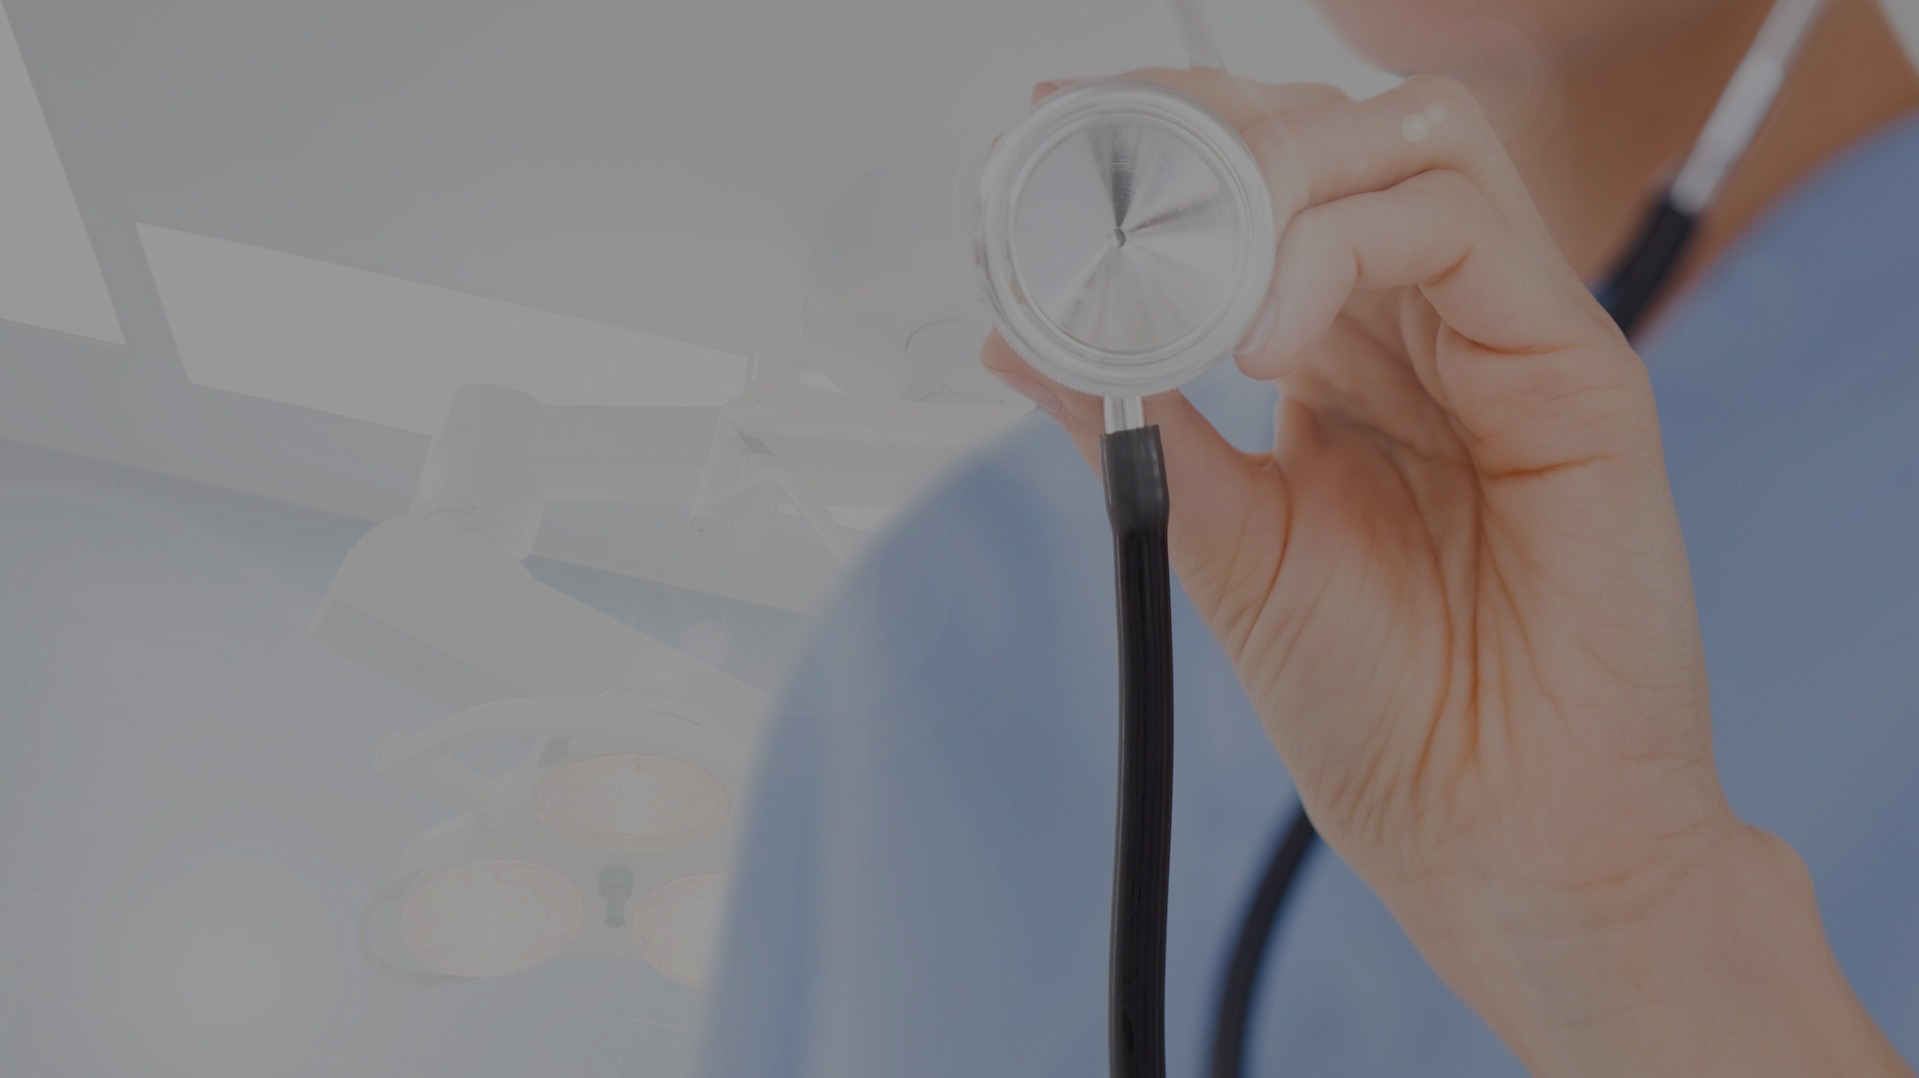 A man holding a stethoscope